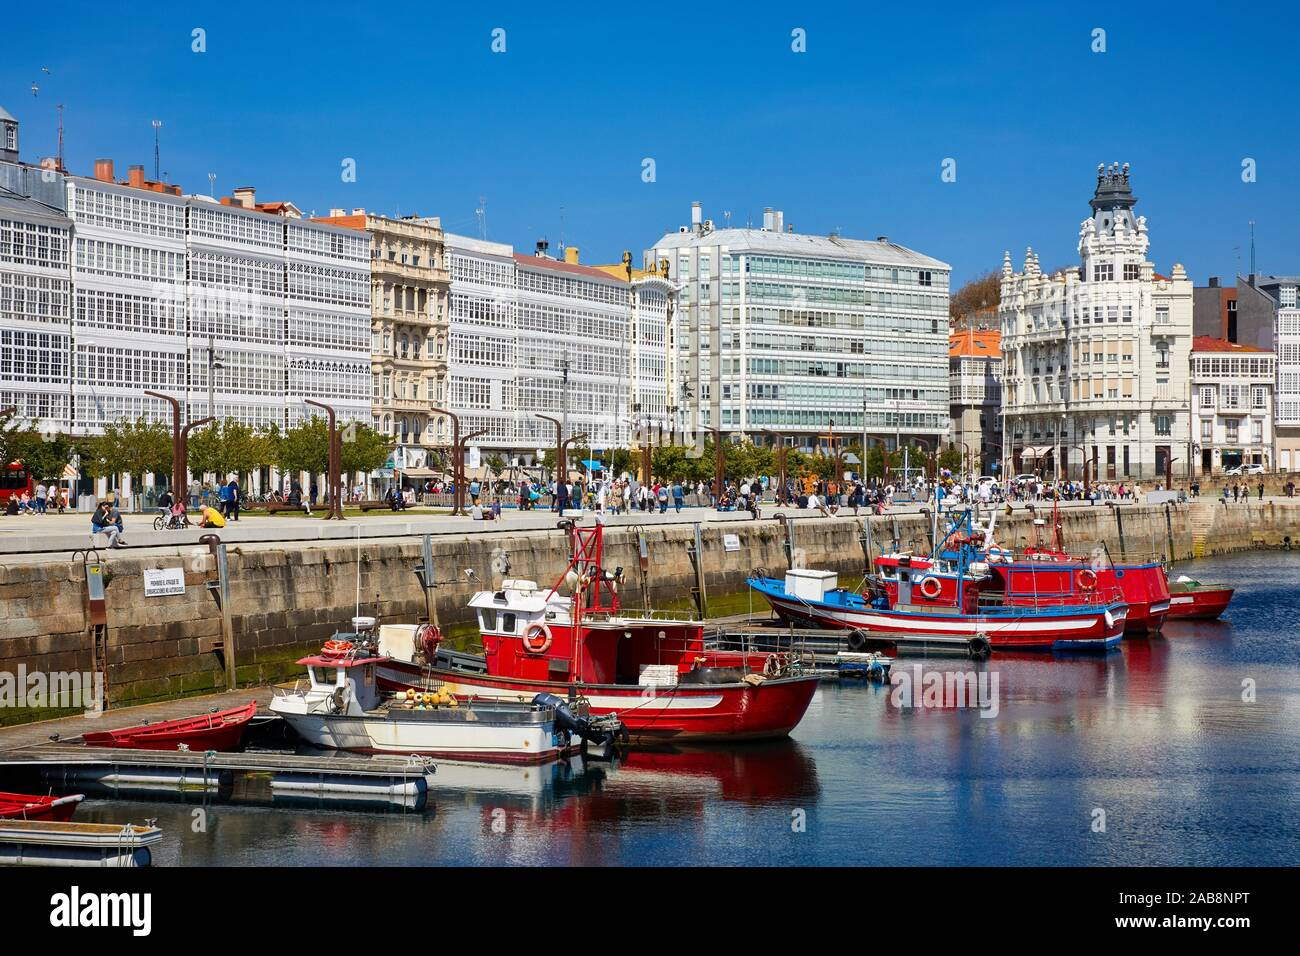 Avenida De La Marina And Harbour A Coruña Galicia Spain Stock Photo Alamy